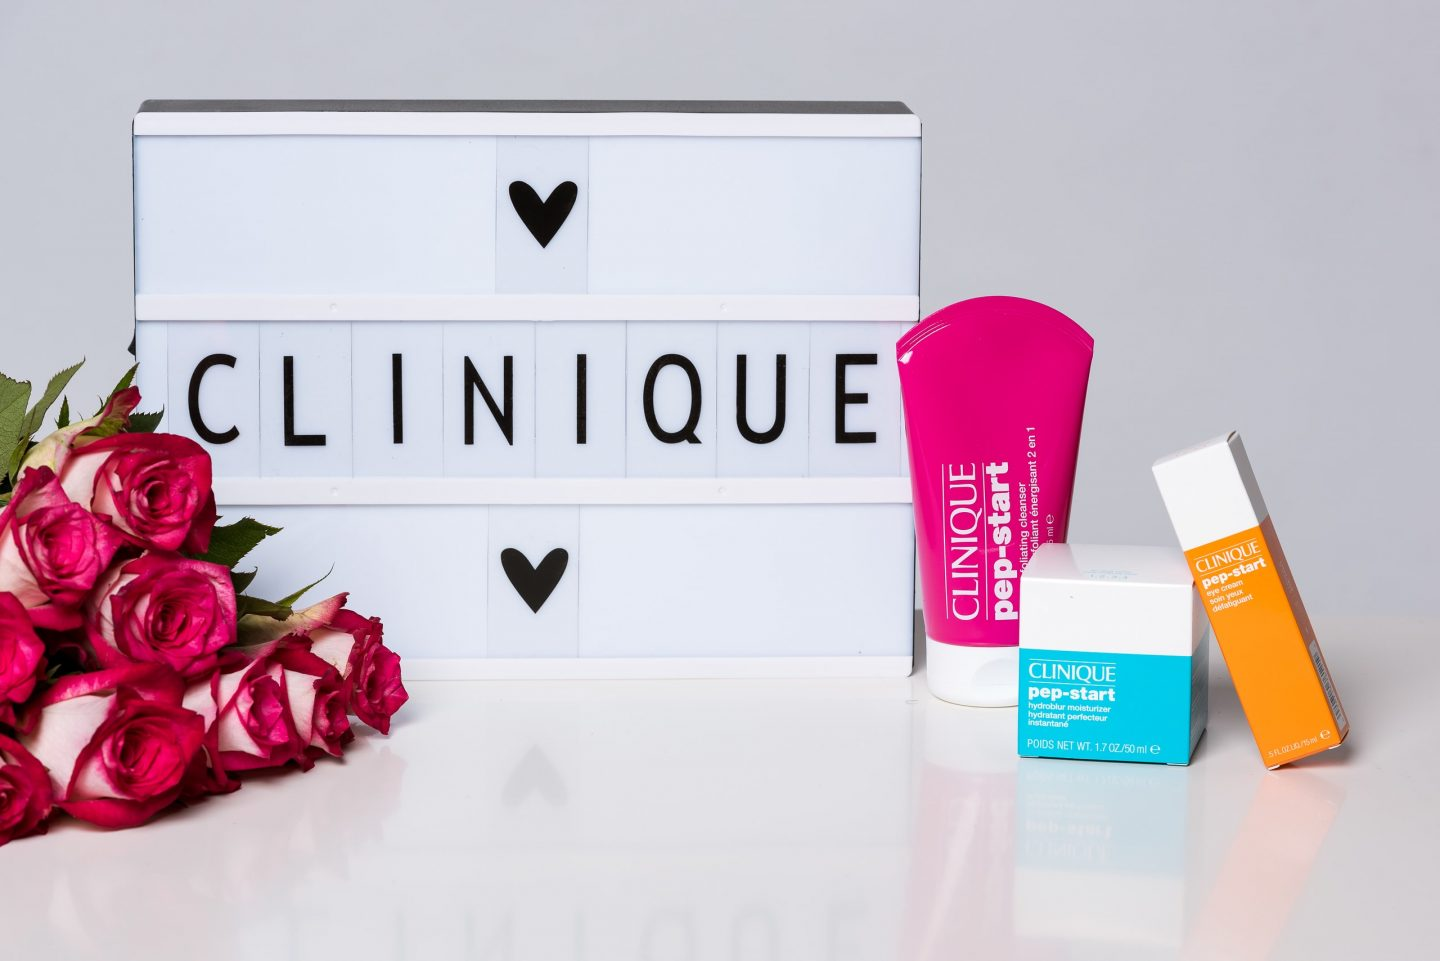 ADVENTSKALENDER #12: Clinique Pep-Start